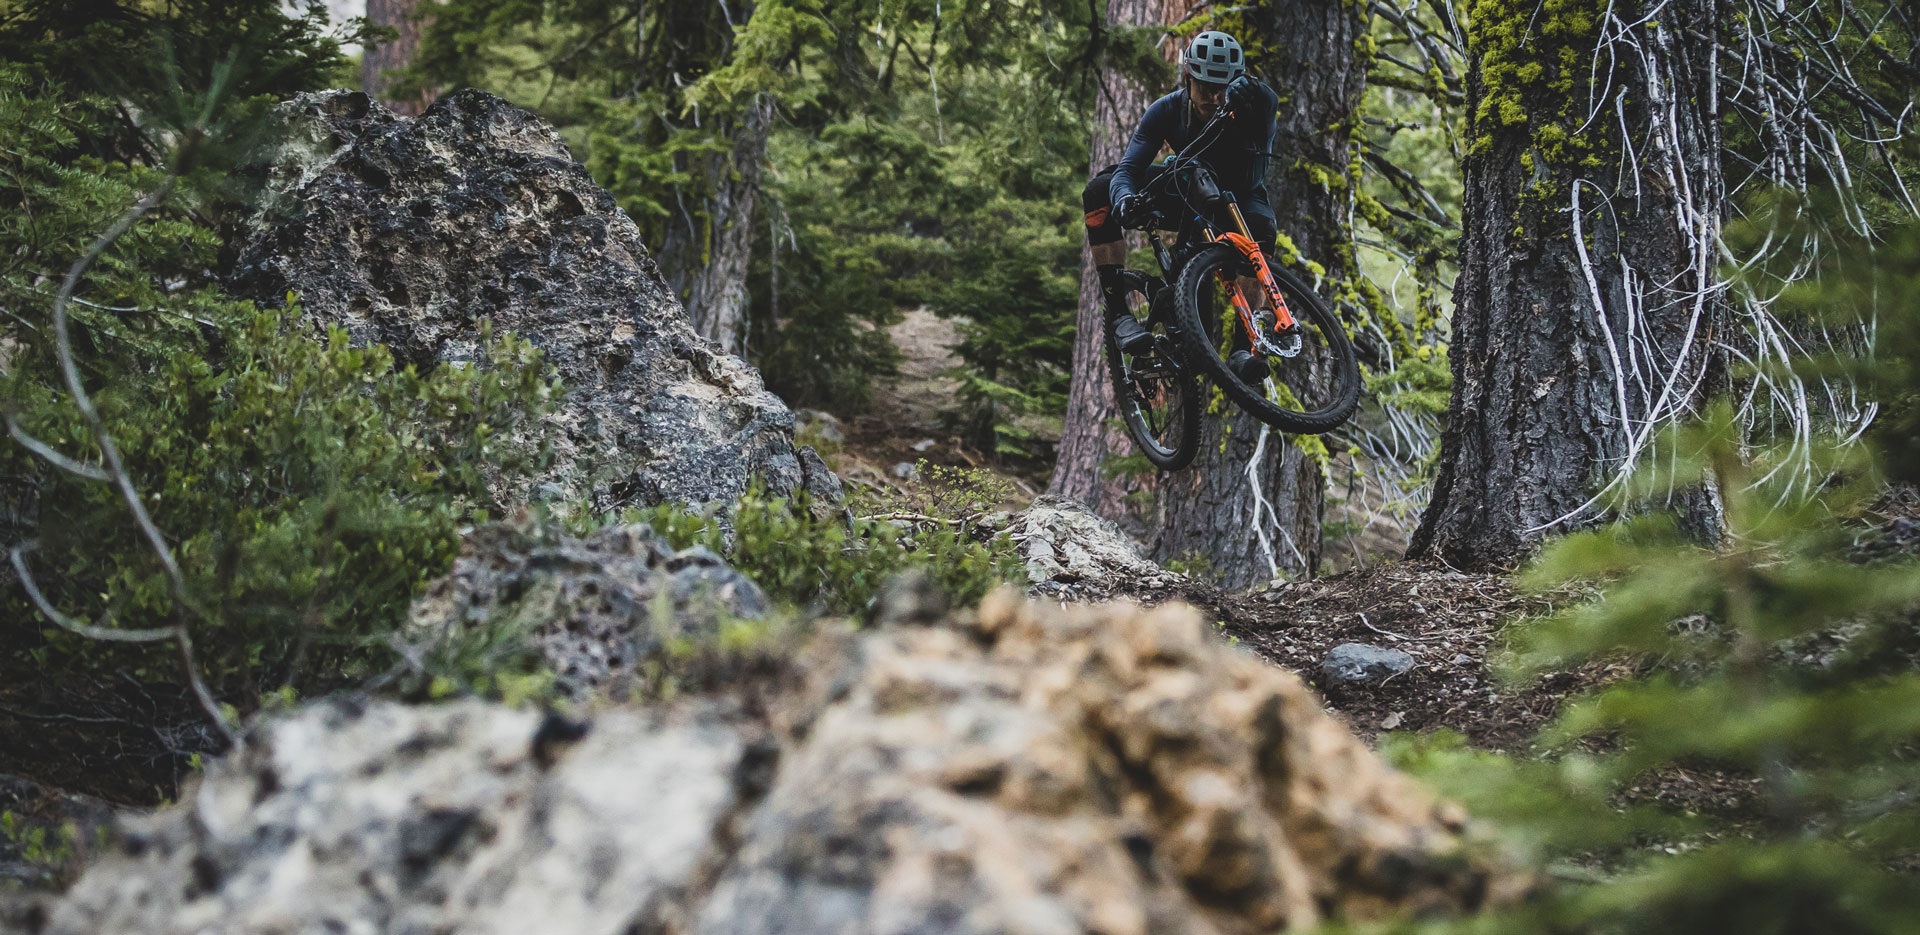 Early in his career, Osborne enjoyed the perks of traveling the world with a factory race team; however, these days he runs his own program with the help from a handful of ardent supporters: Transition Bikes, Fox suspension, Shimano, WTB, Thule, Smith optics, and Dakine. Photo by Ryan Cleek